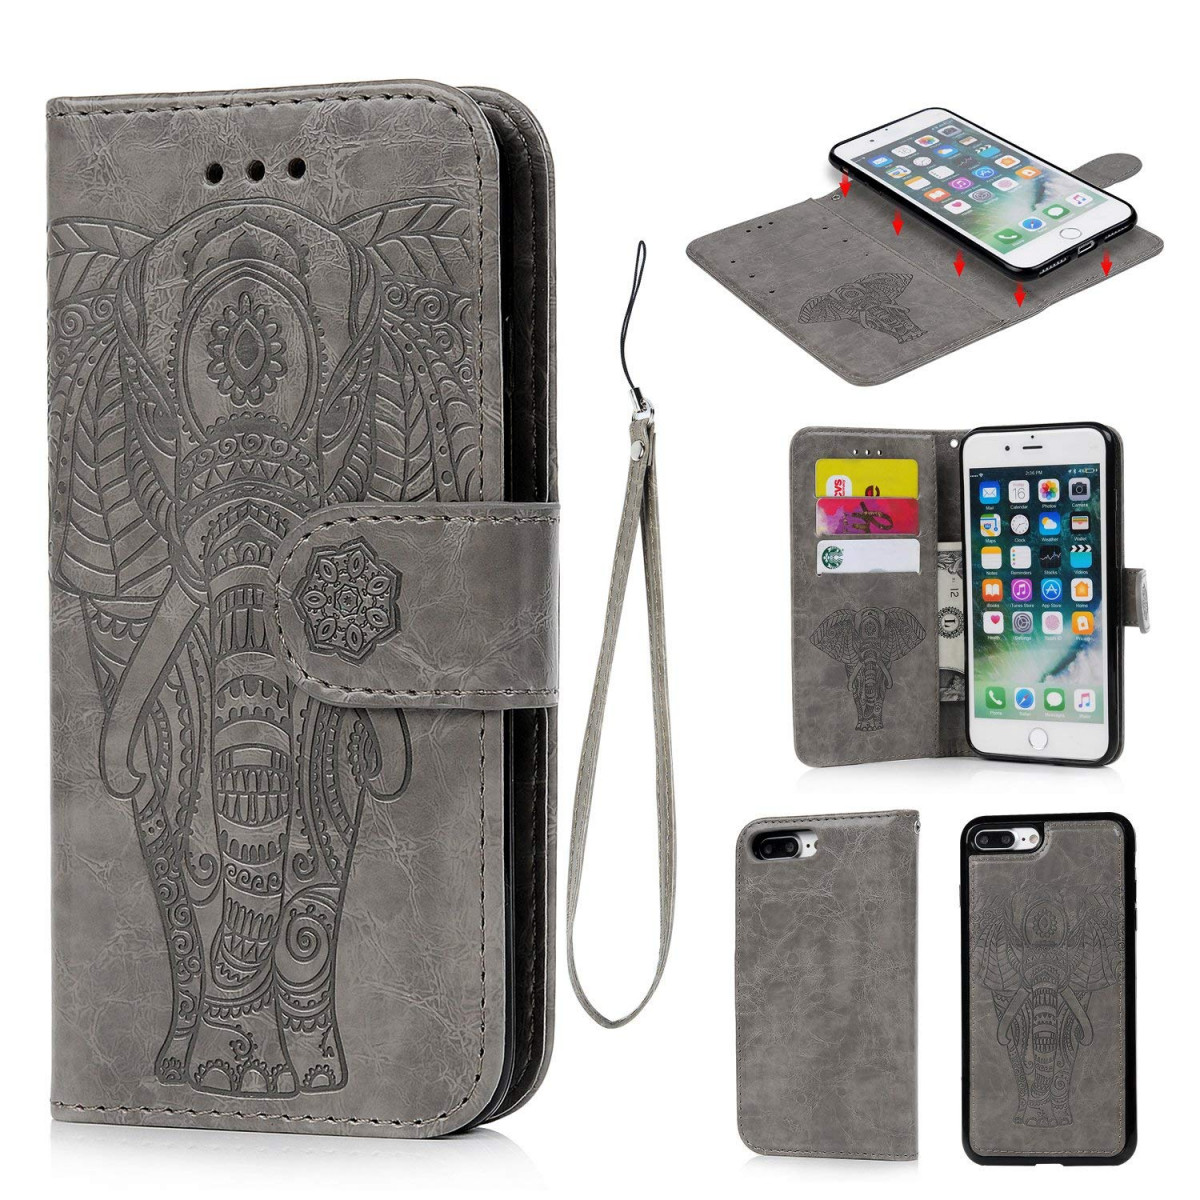 sports shoes 16138 fa592 iPhone 8 Plus Case, iPhone 7 Plus Case PU Leather Wallet Case Oil Wax  Embossed Elephant TPU Inner Detachable Magnetic Credit Card Holders for  iPhone 7 ...